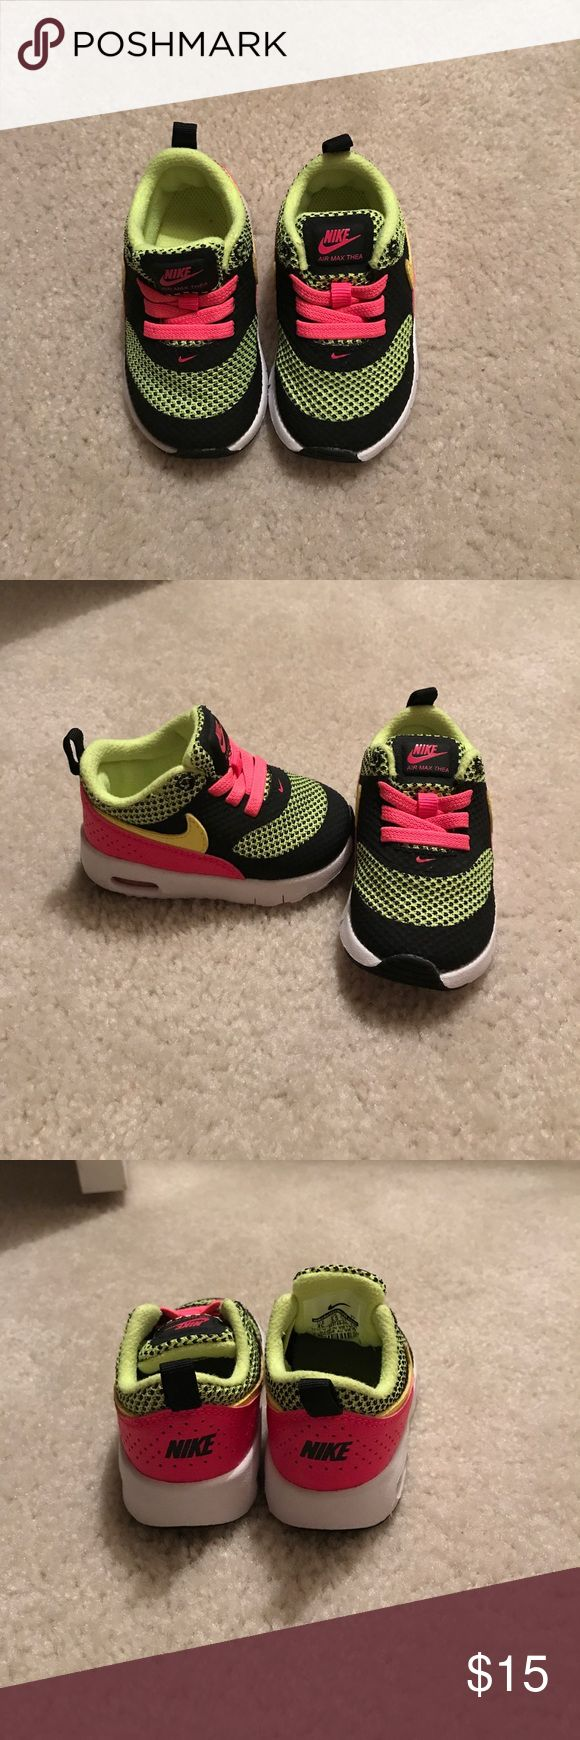 Baby Nike Tennis Shoes Colorful Nike baby shoes. Excellent condition. Nike Shoes Baby & Walker